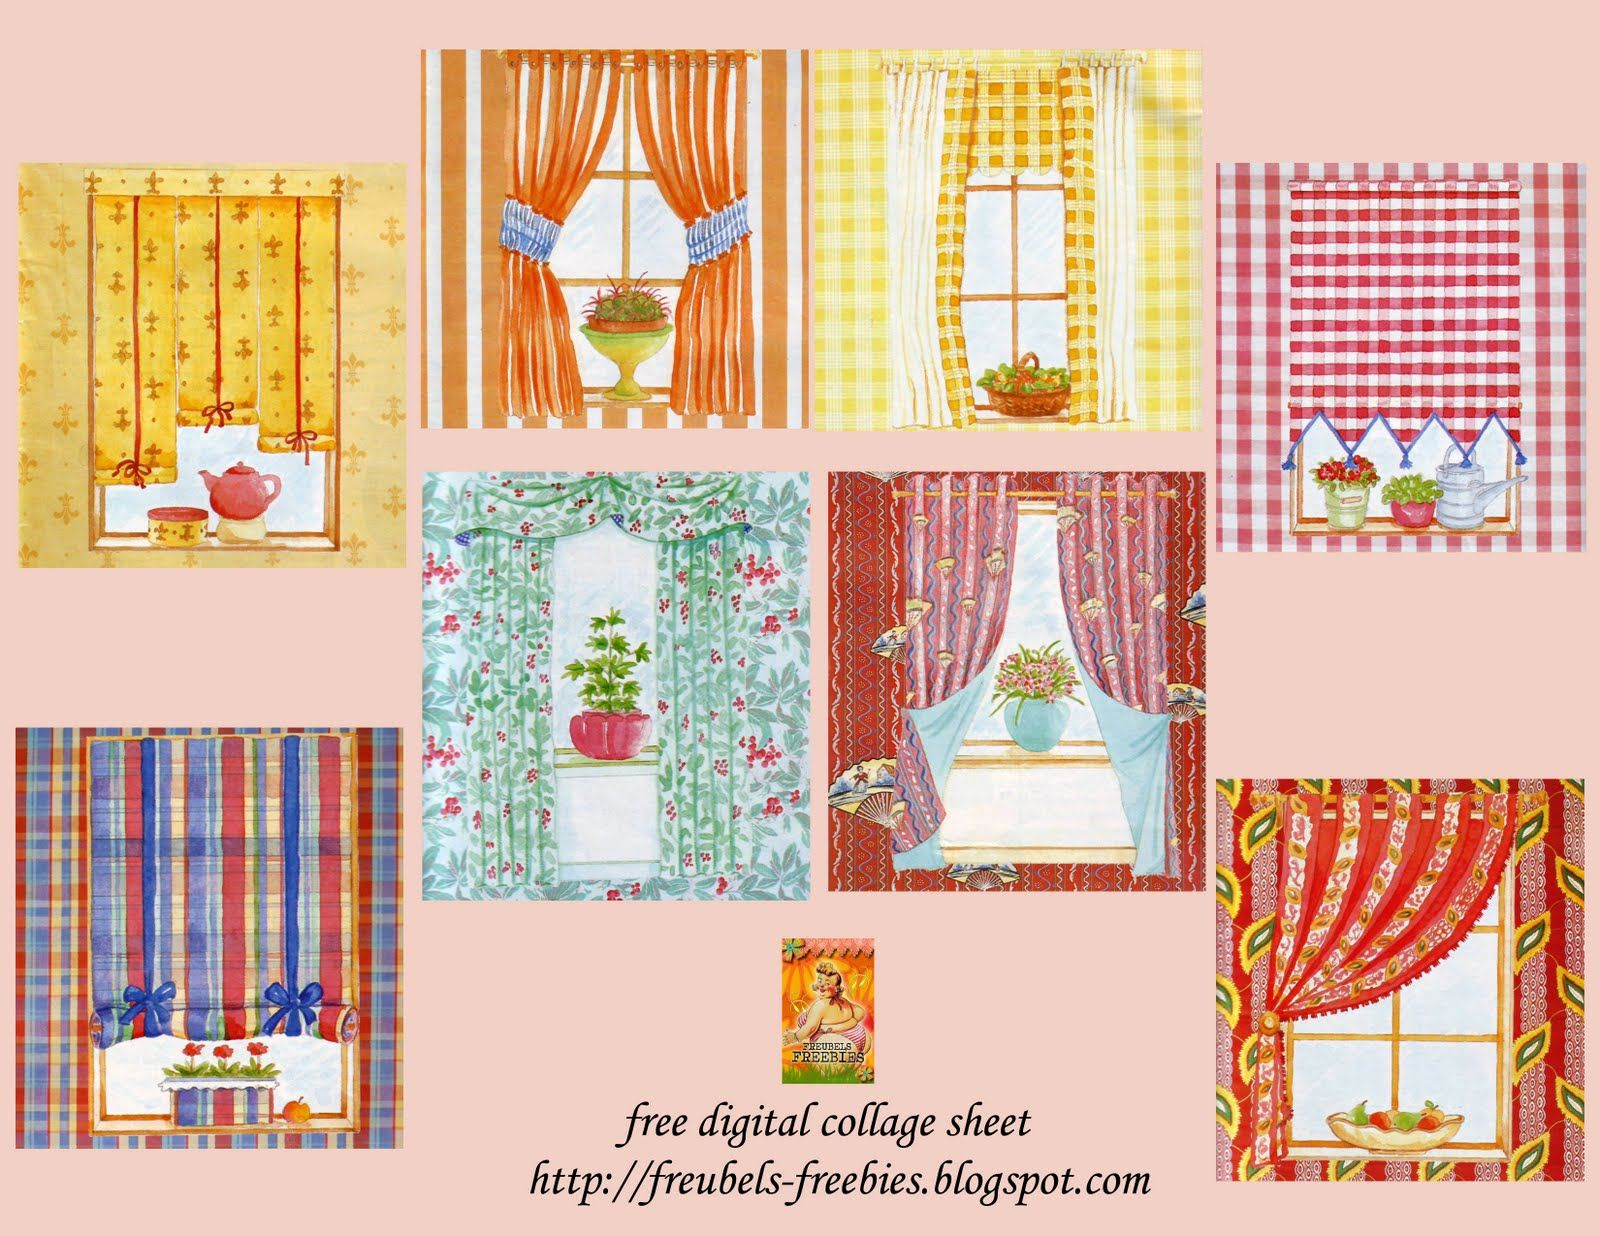 Harry Potter Bathroom Accessories Windows With Curtains Printable Art Journal Journal